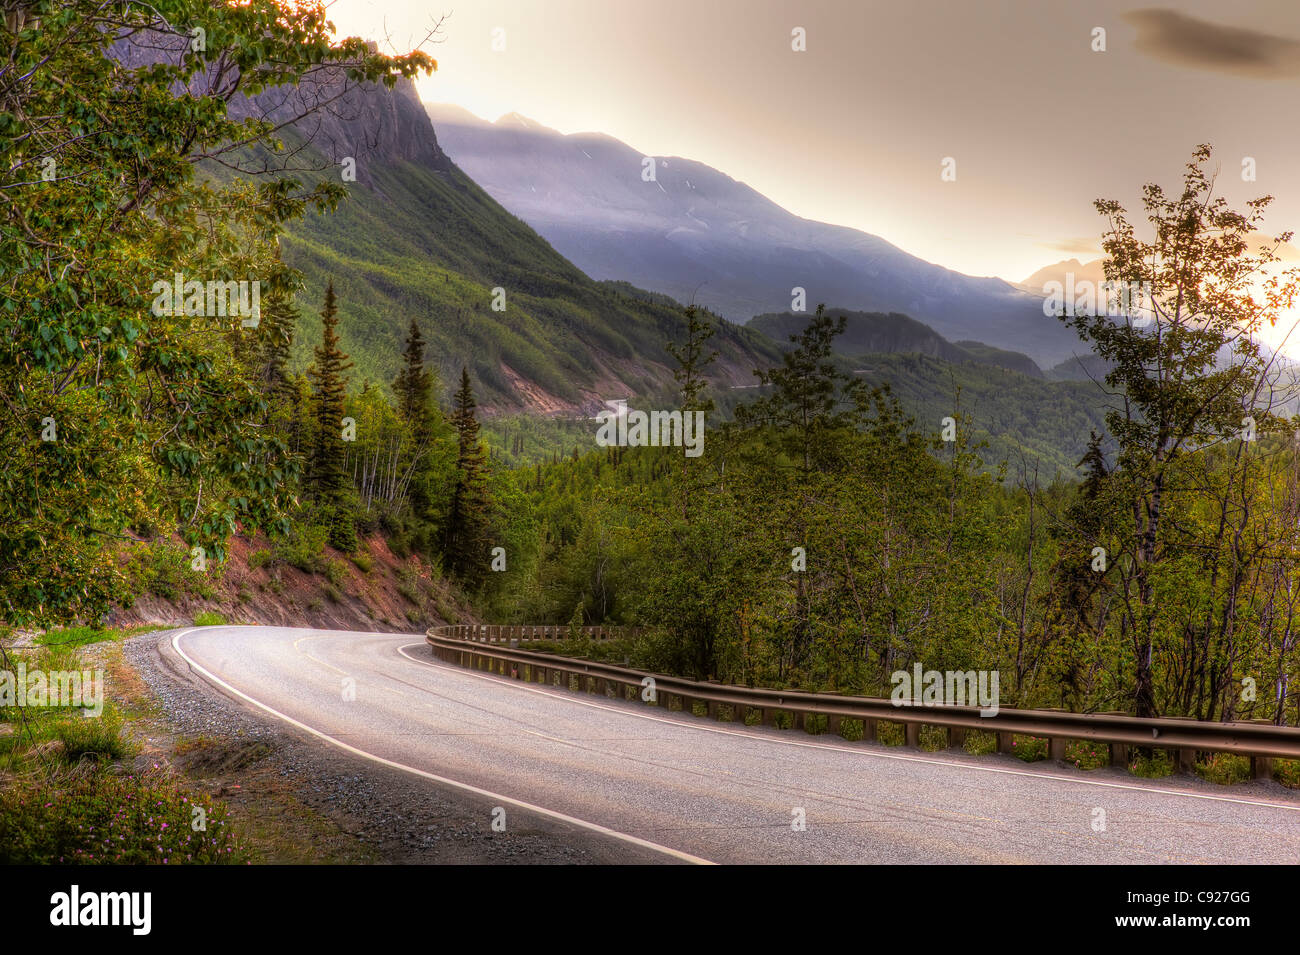 View of the Glenn Highway as it winds through the mountains on the way to Glennallen, Southcentral Alaska, Summer - Stock Image